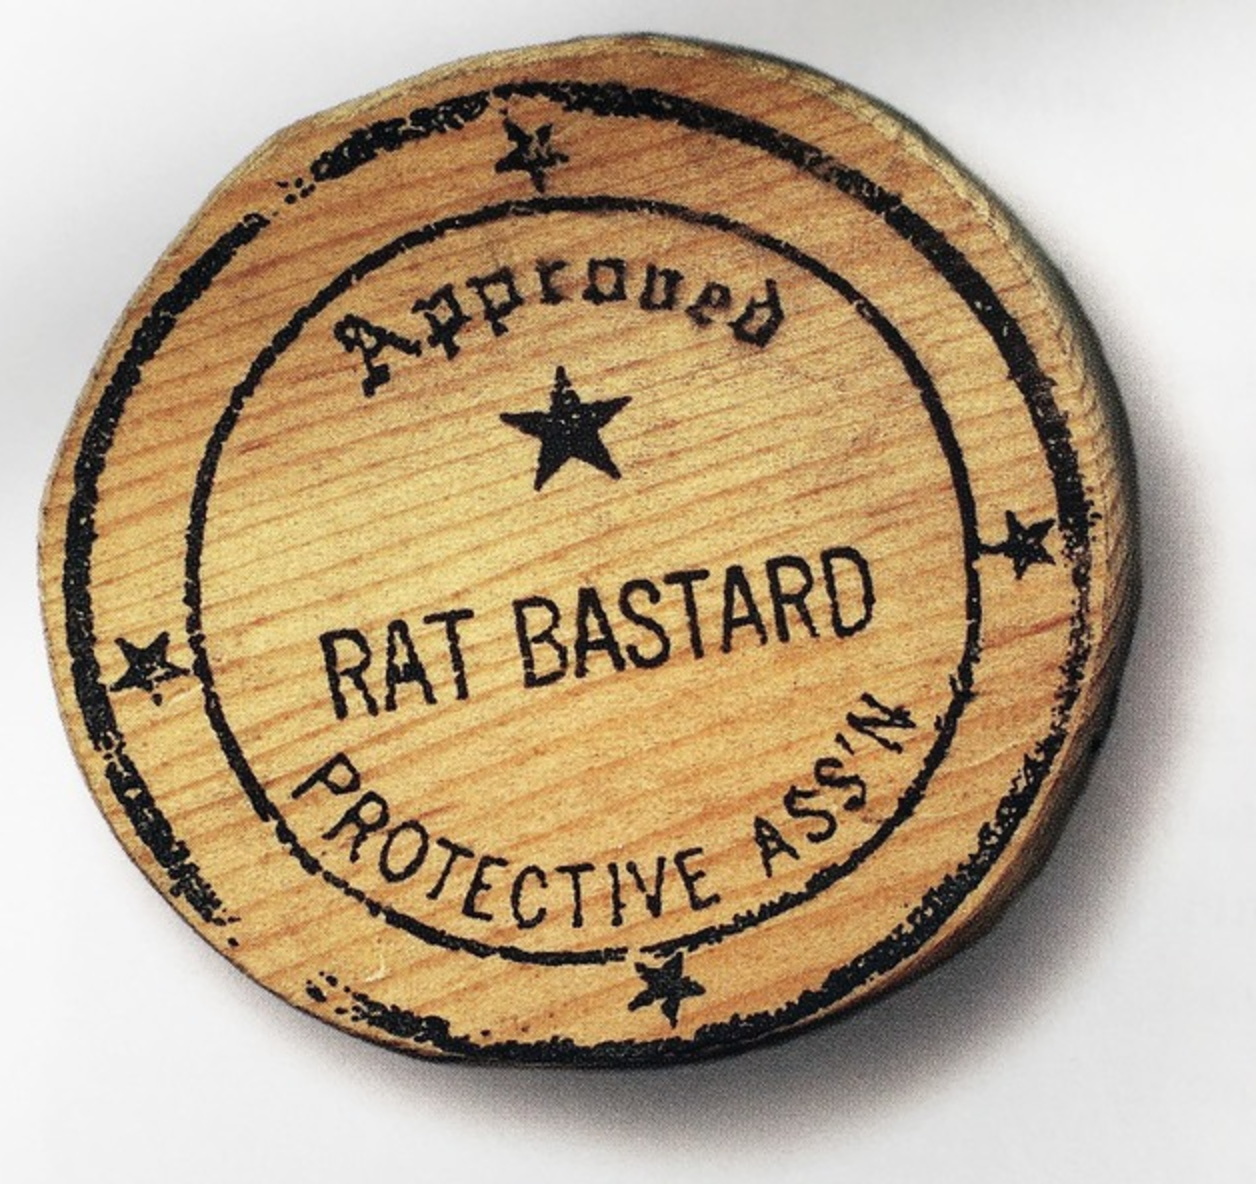 "© BRUCE CONNER FAMILY TRUST, SAN FRANCISCO/ARTISTS RIGHTS SOCIETY (ARS), NEW YORK; Back of the ""Rat Bastard Protective Ass'n"" stamp, created ca. 1957-58."